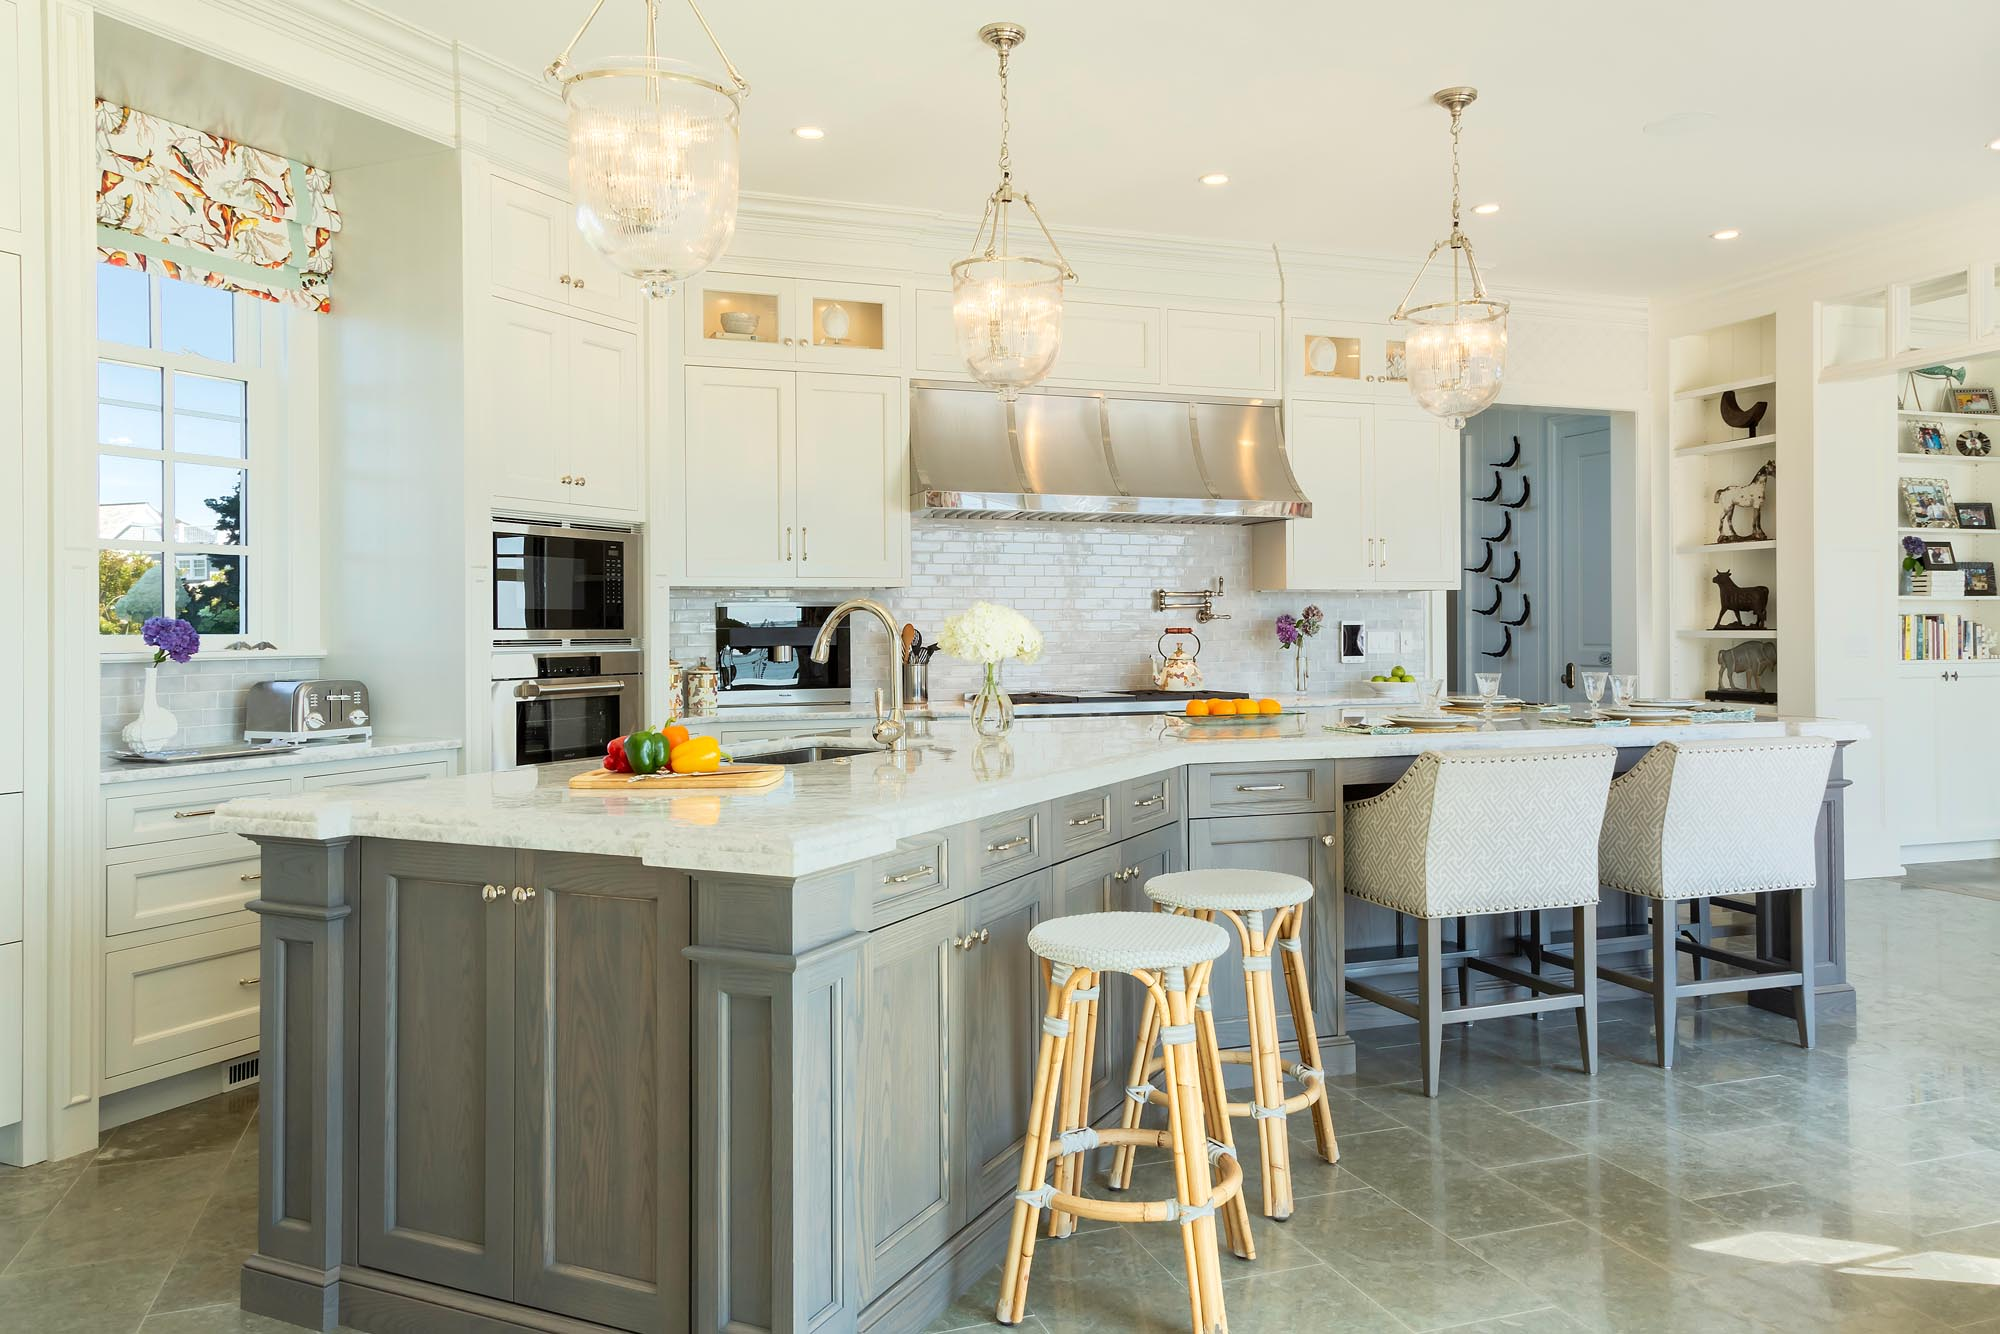 Transitional kitchen with V-shaped center island and white perimeter cabinetry